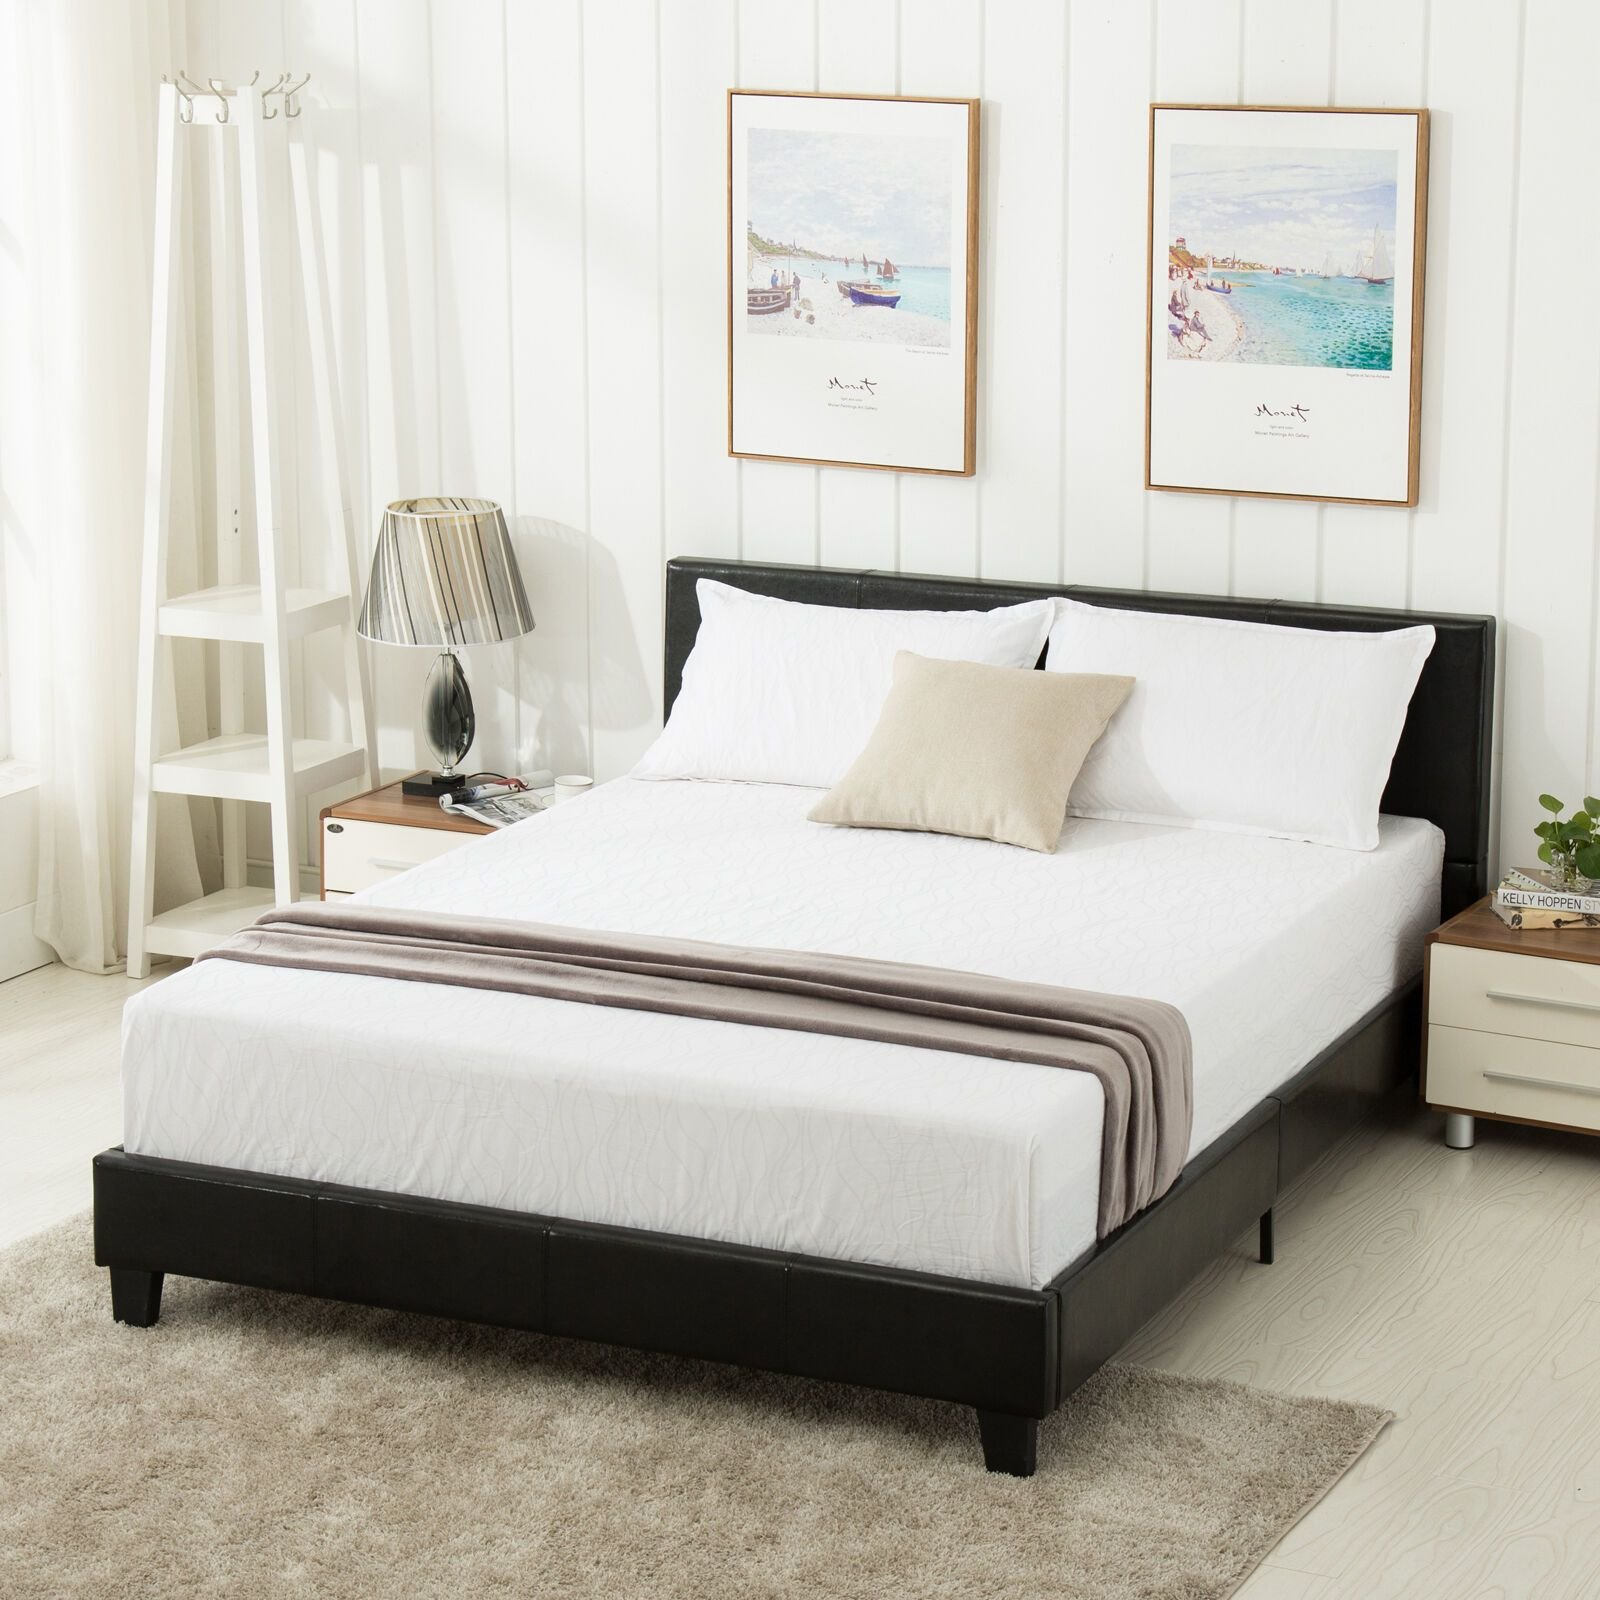 Best Queen Size Faux Leather Platform Bed Frame Slats With Pictures